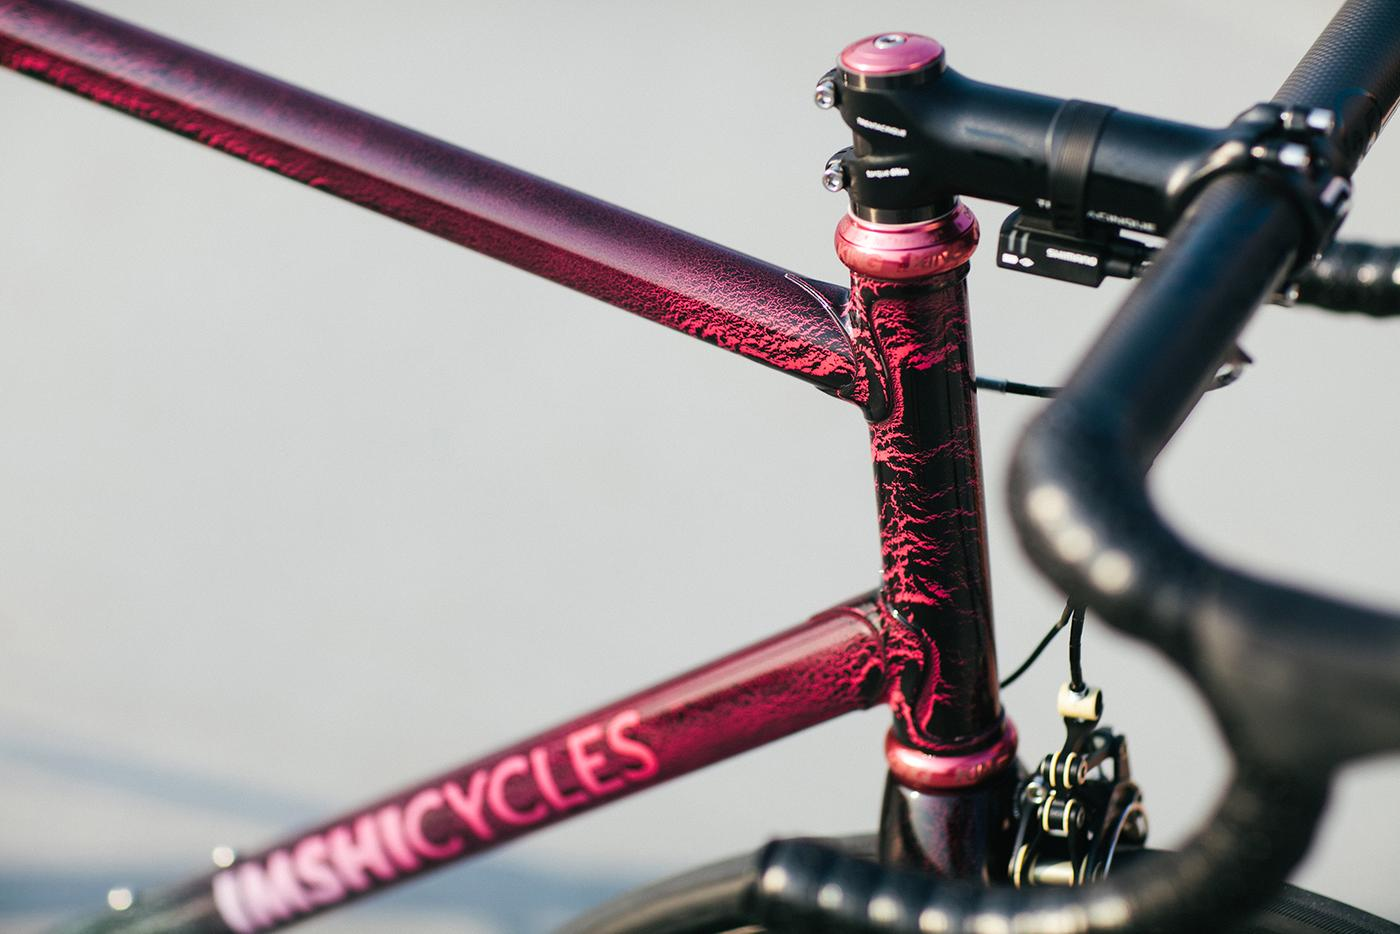 An Intro to Imshi Cycles with a Di2 Road